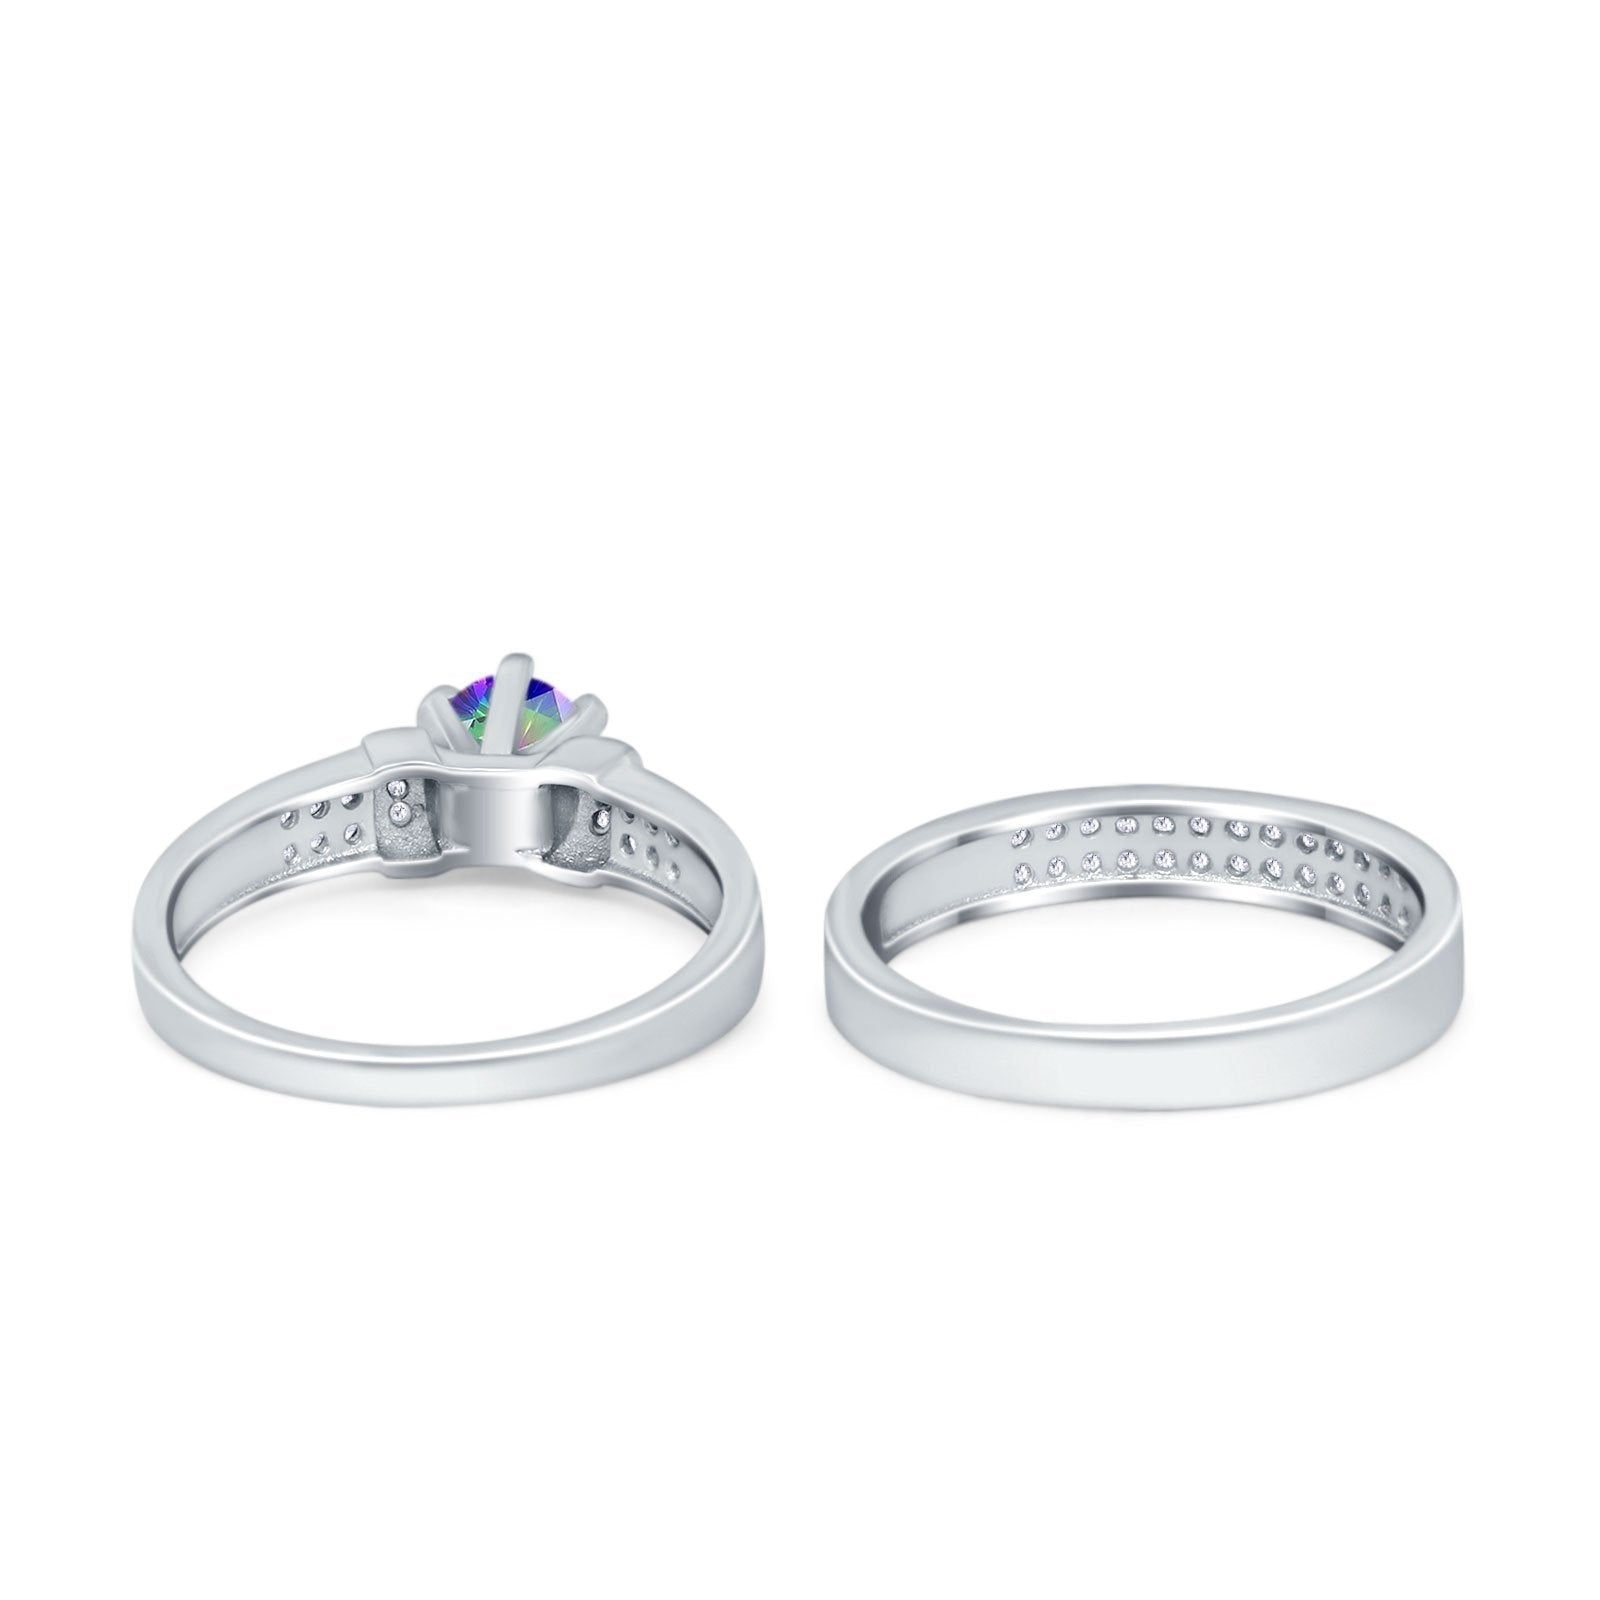 Two Piece Bridal Set Wedding Simulated Cubic Zirconia Ring 925 Sterling Silver